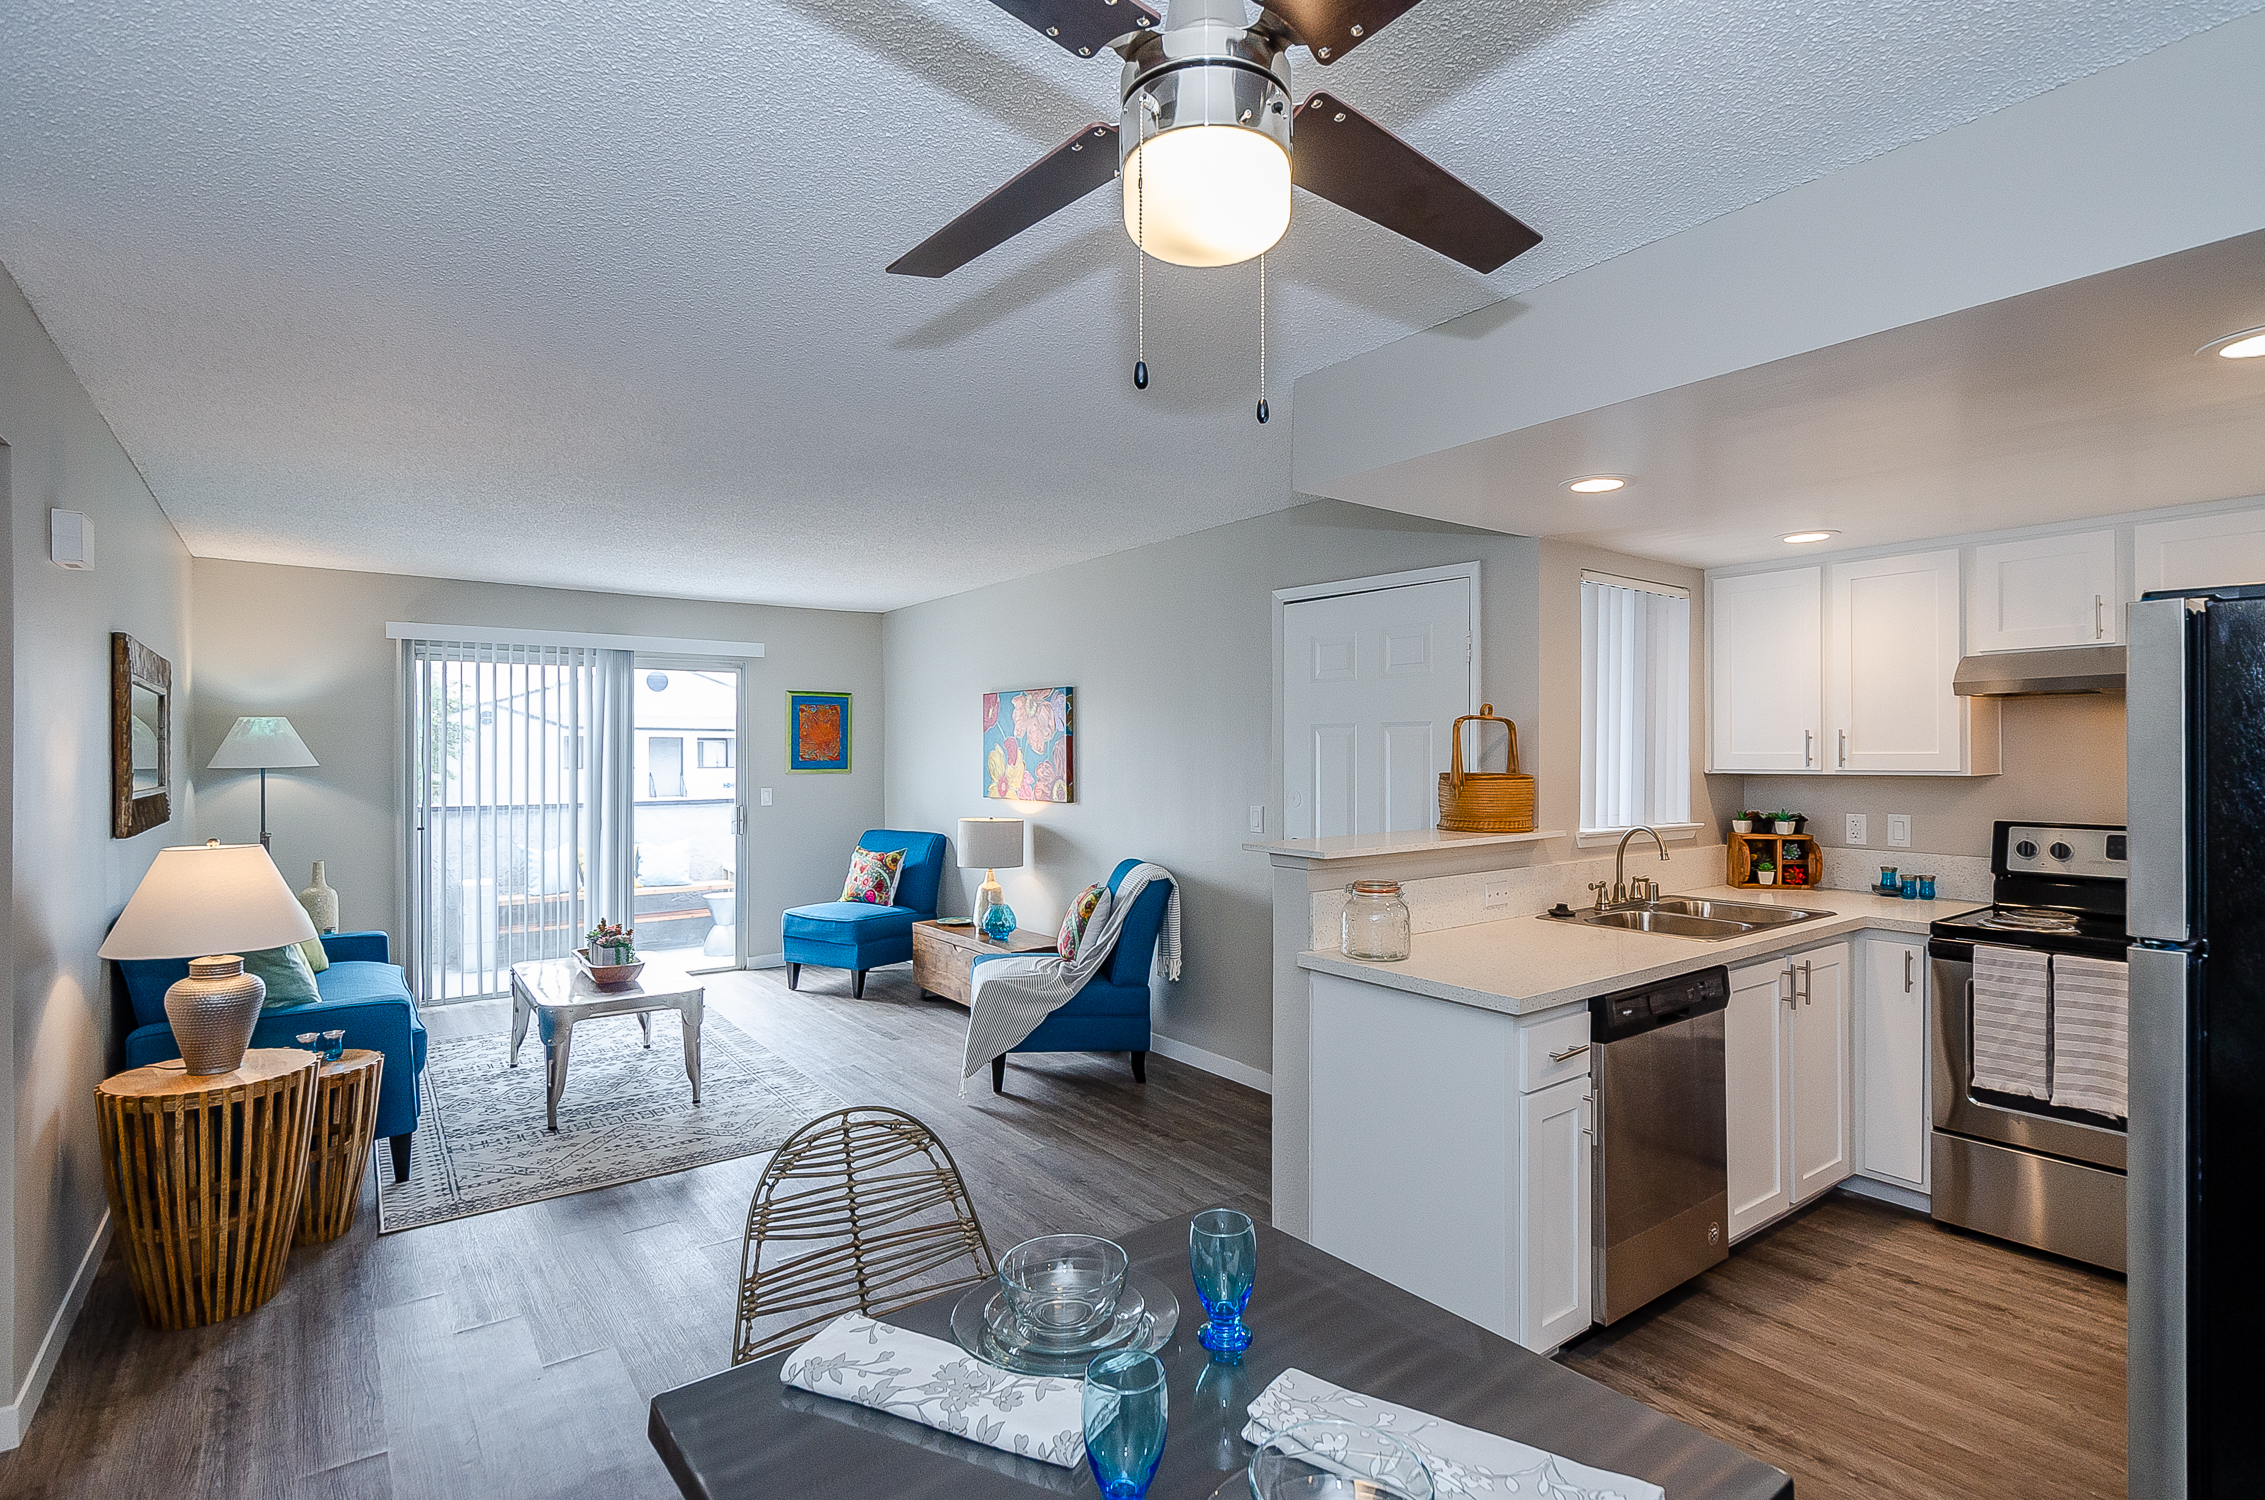 kitchen opens to dining and tall counter opens to living room, with wood-look flooring throughout